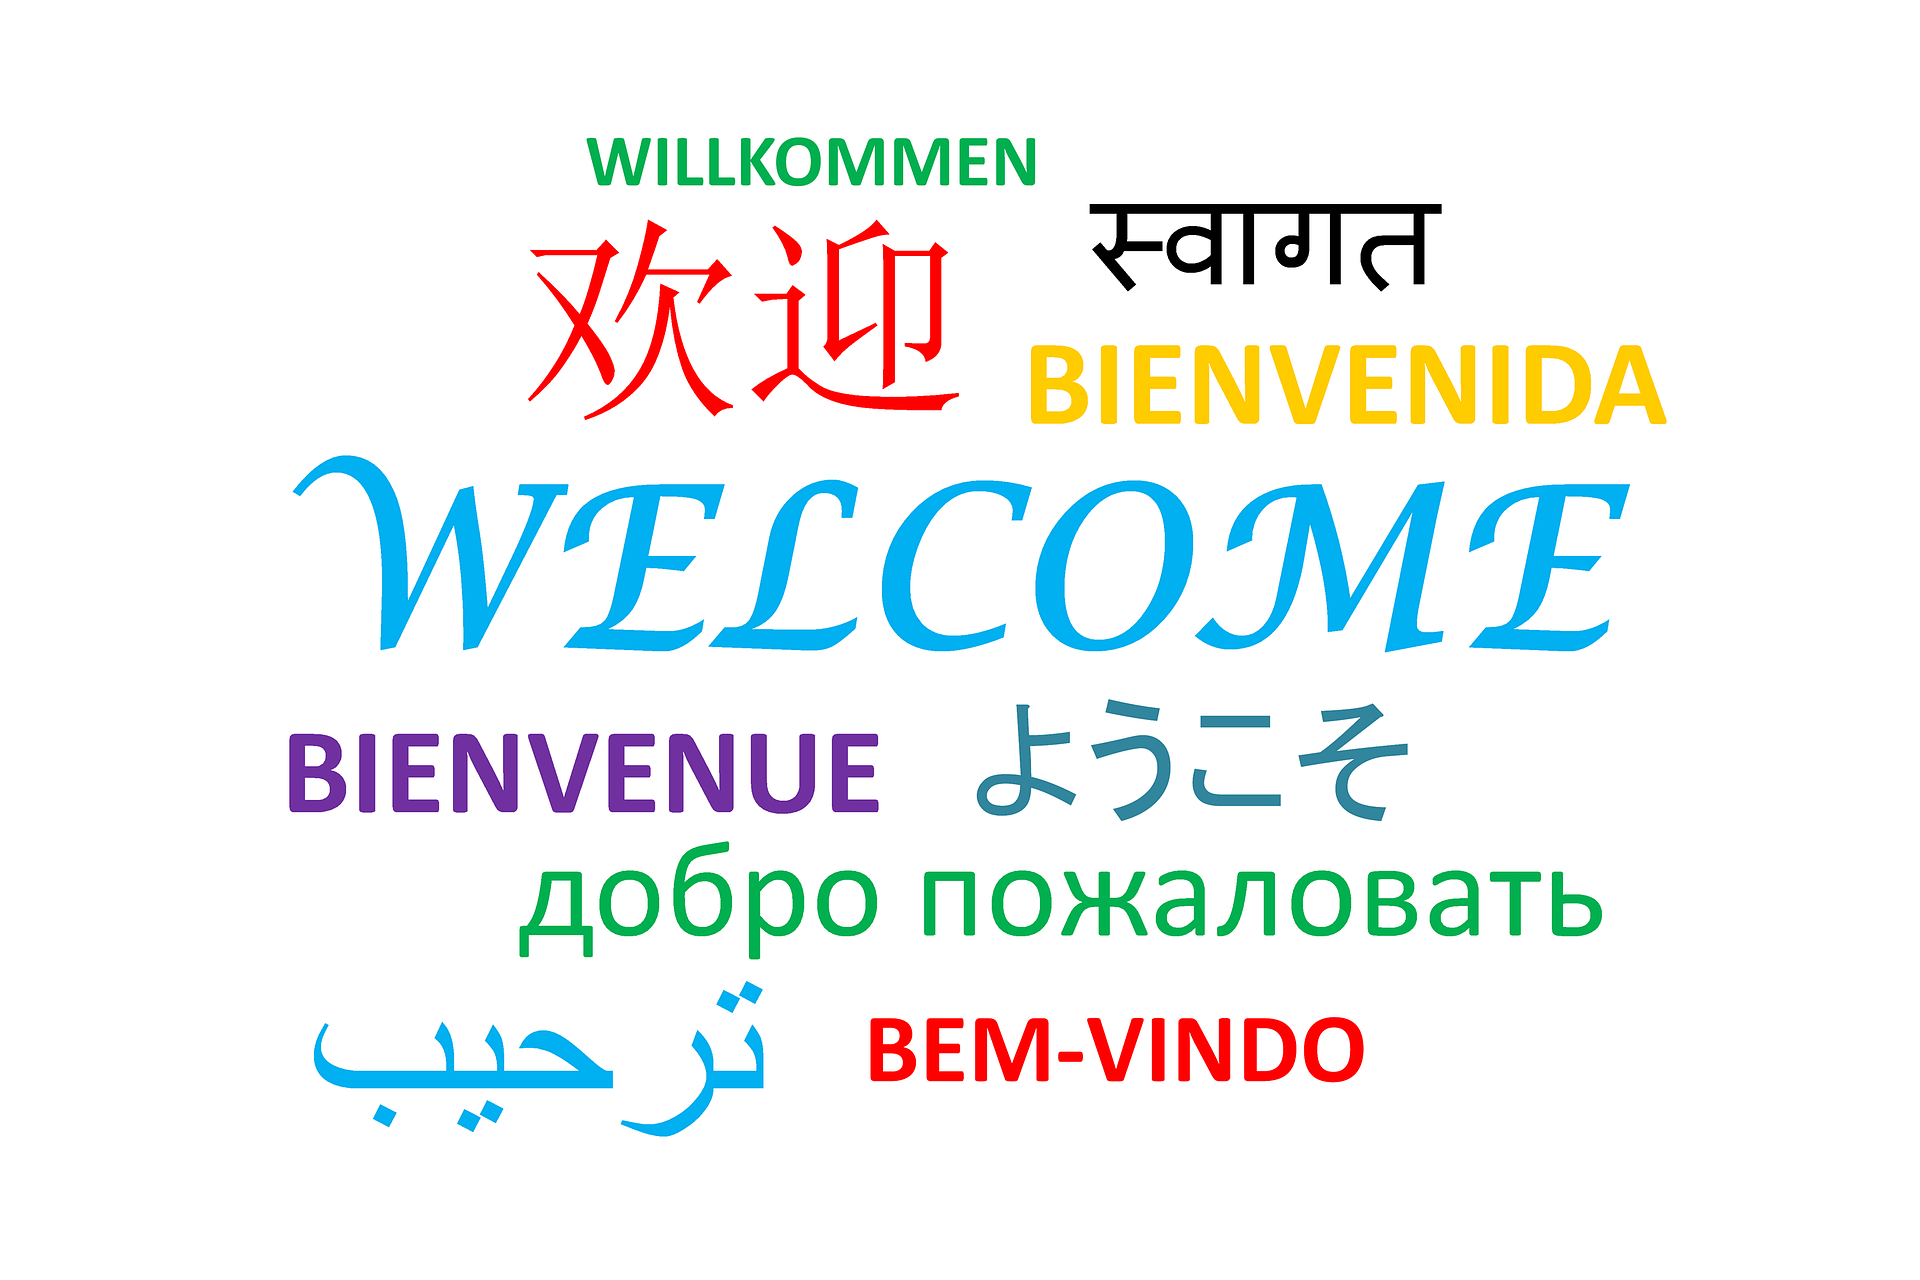 Should I try learning another language?